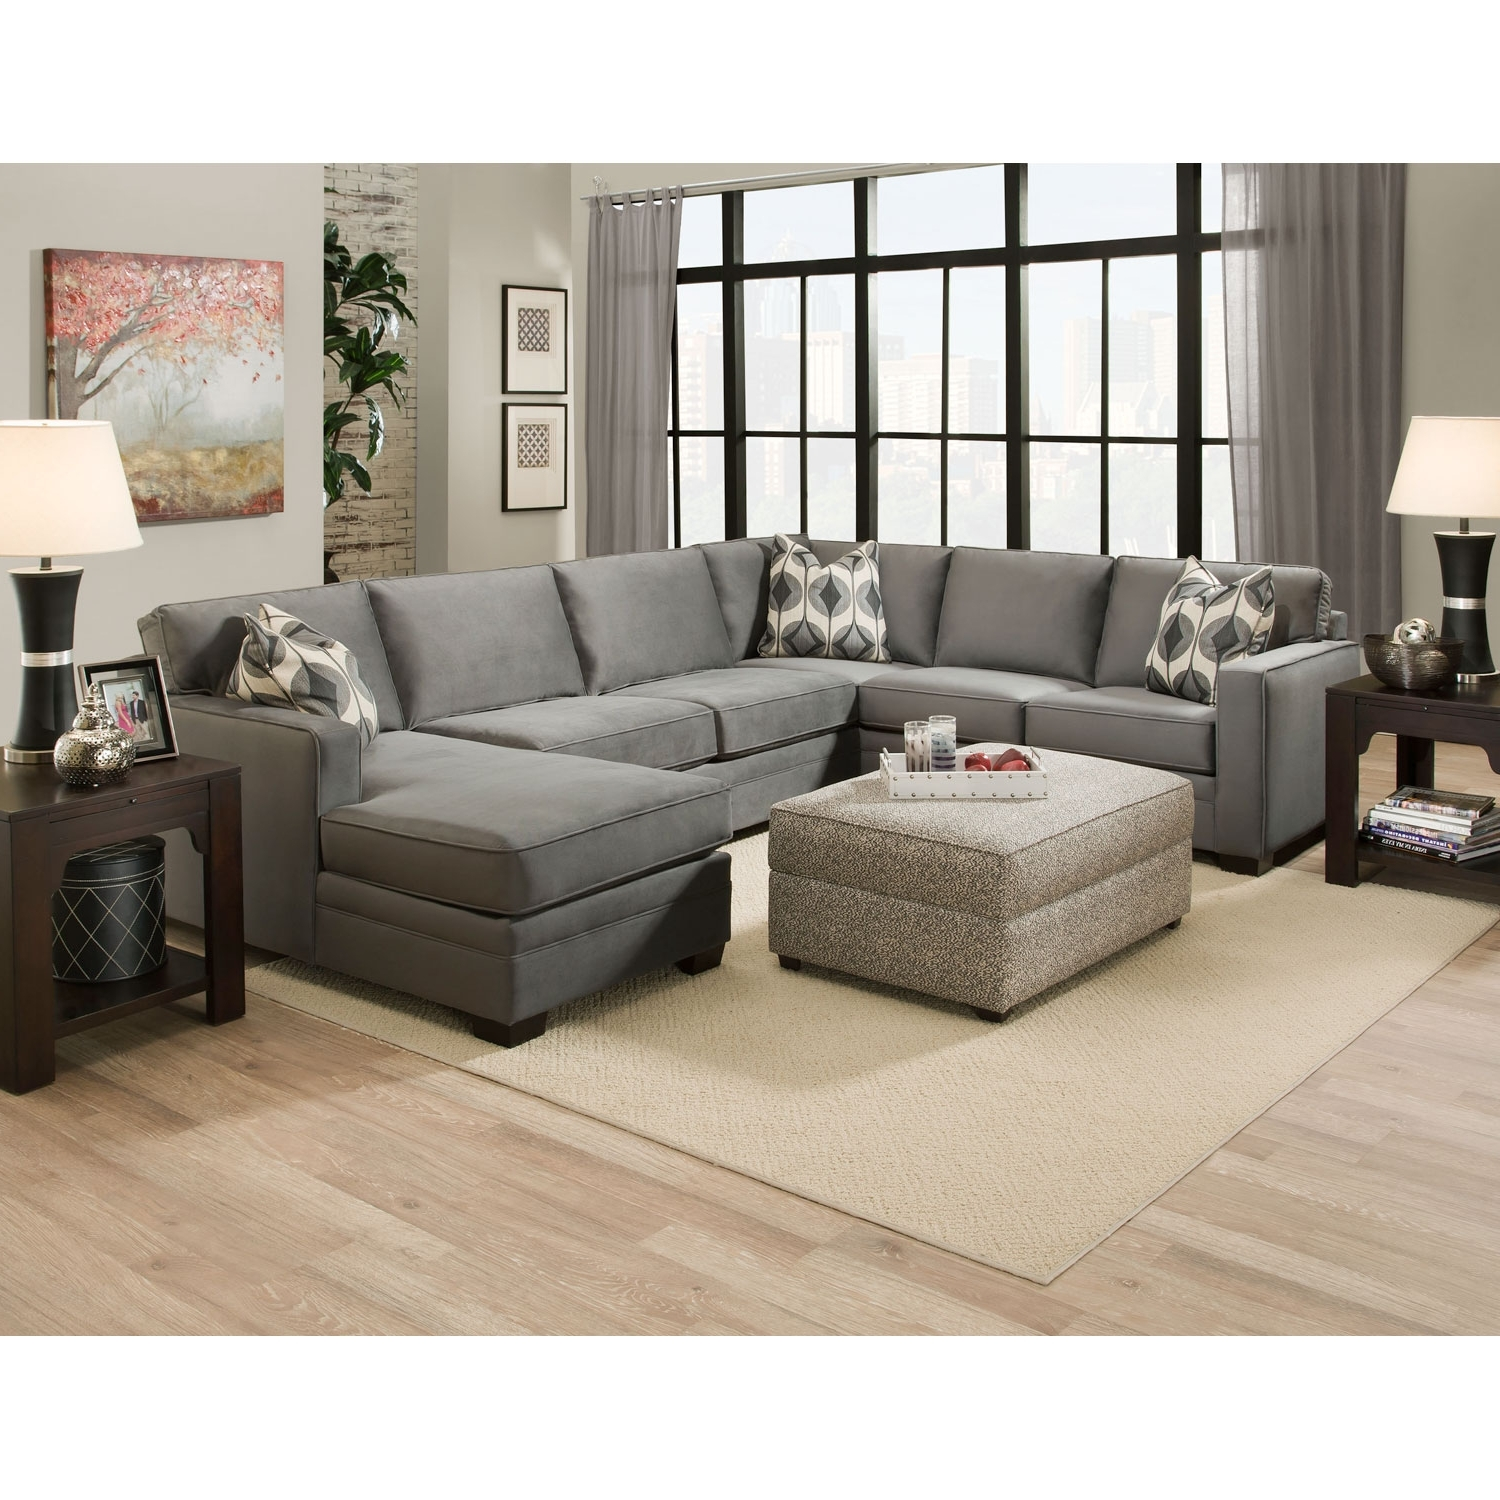 U Shaped Sectionals With Chaise regarding Most Current Gray Extra Large U Shaped Sectional Sofa With Chaise And Accent